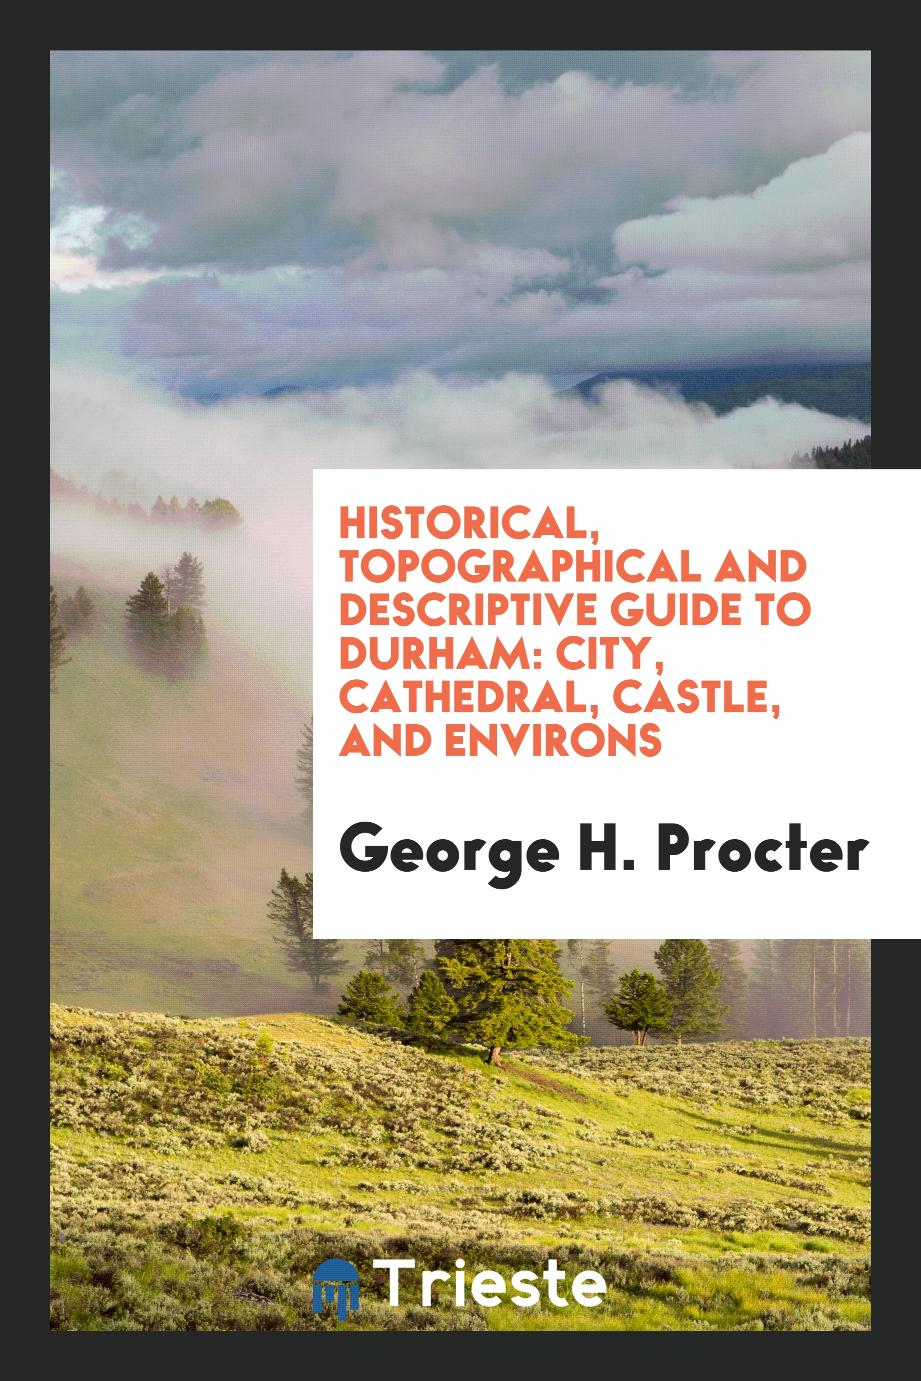 Historical, Topographical and Descriptive Guide to Durham: City, Cathedral, Castle, and Environs